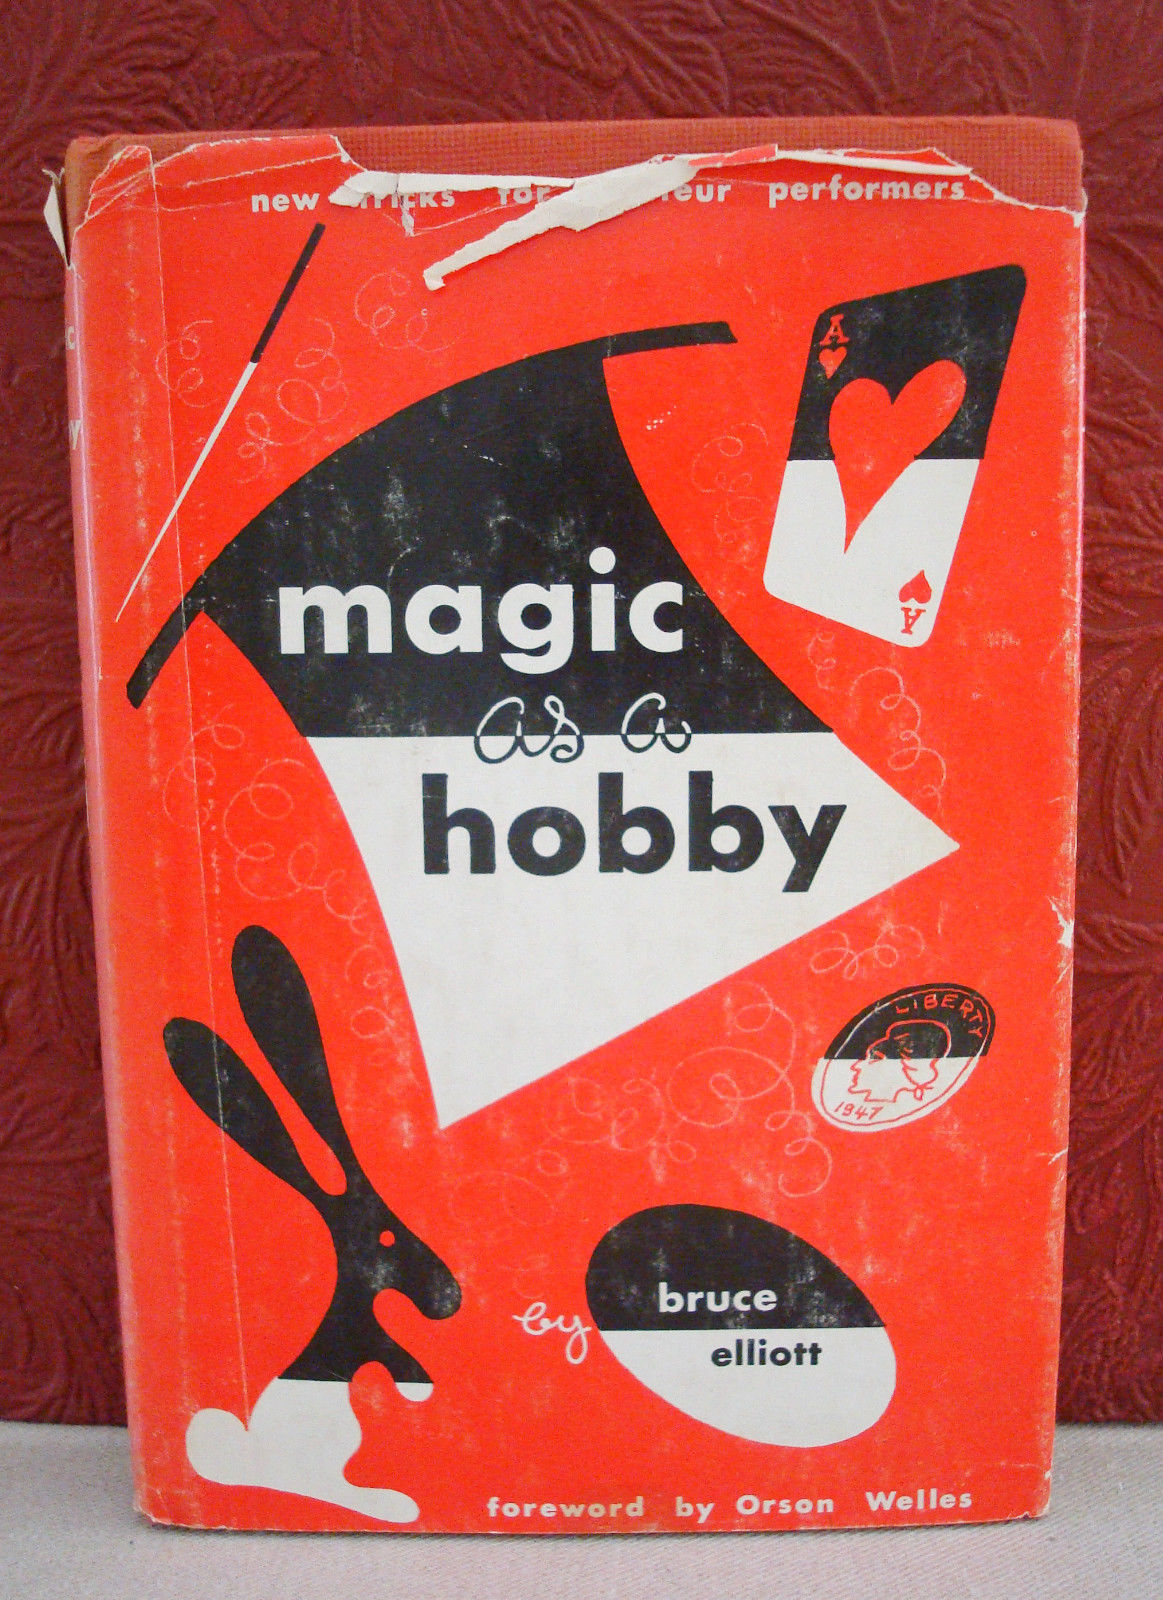 Magic as a Hobby by Bruce Ellitott-Forward by Orson Welles-Hardbound, DJ